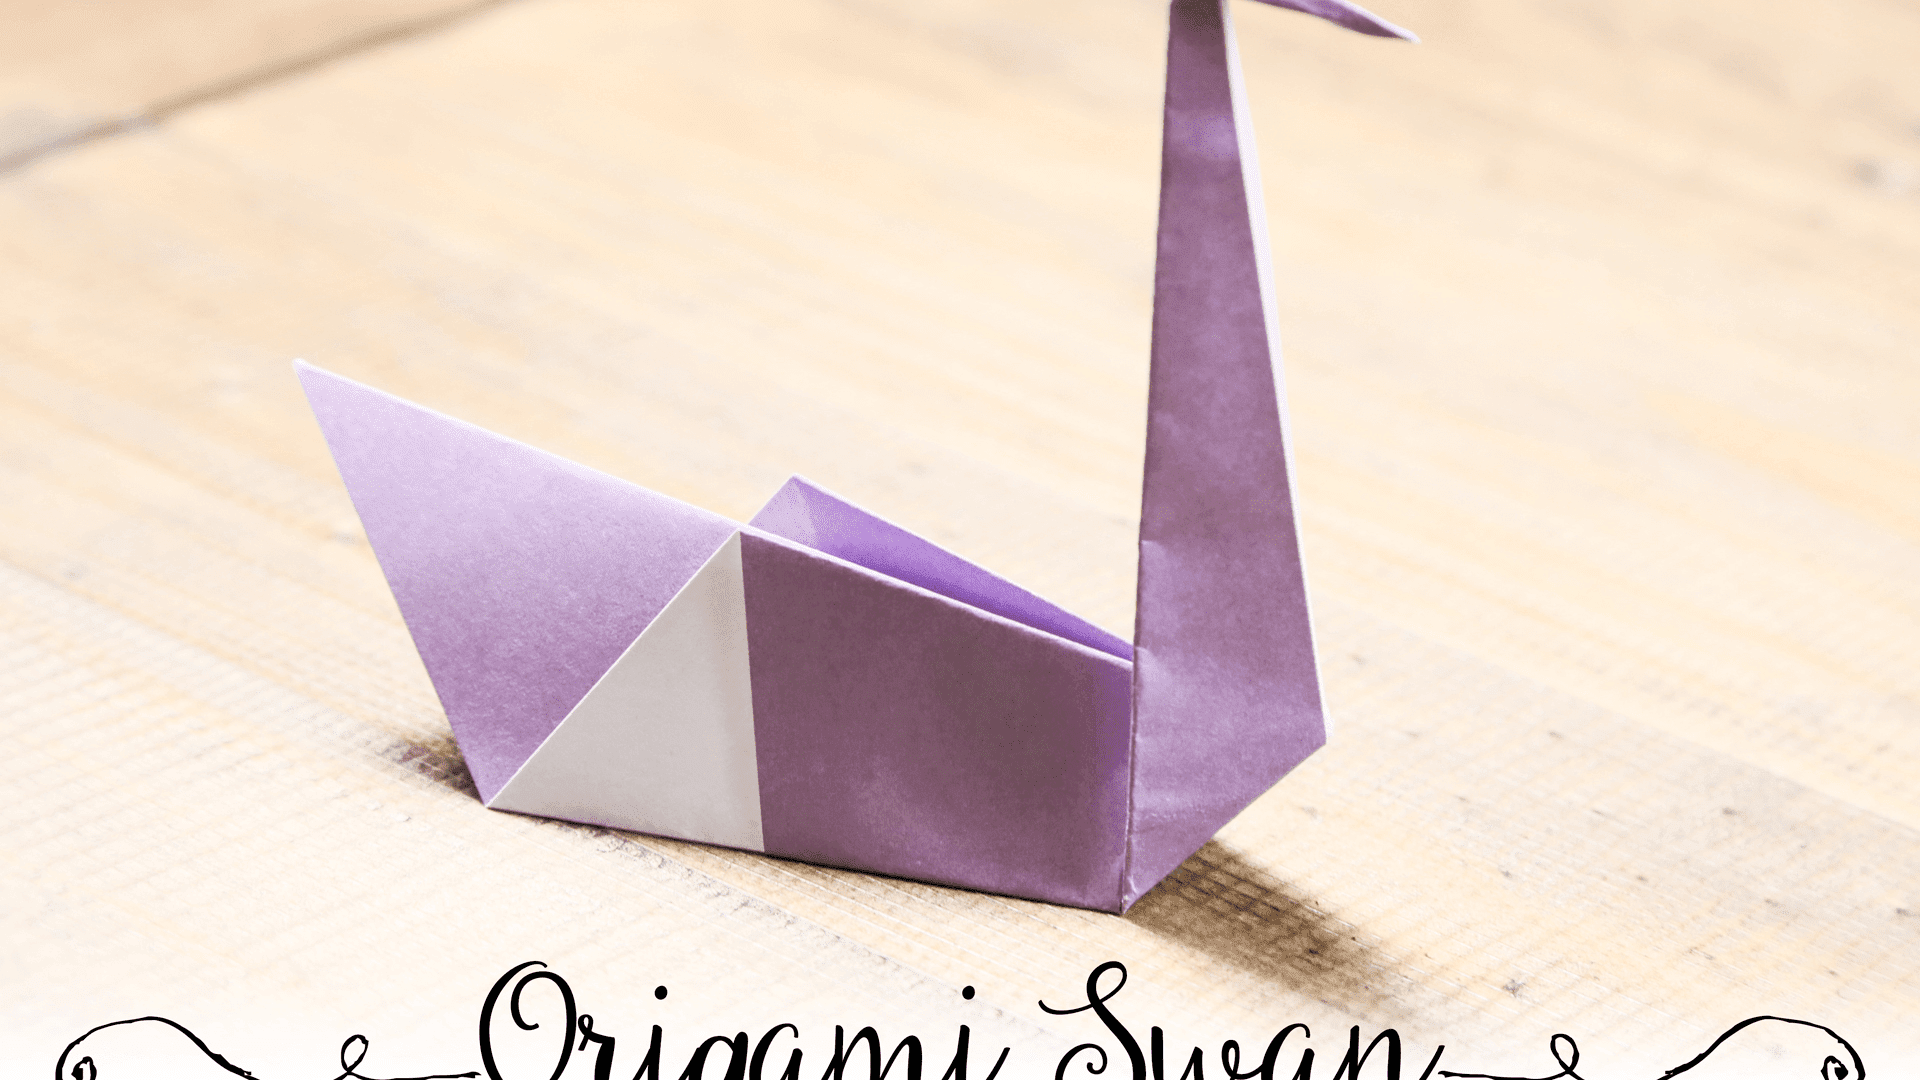 3d origami instructions - Google Search | Origami instructions ... | 1080x1920